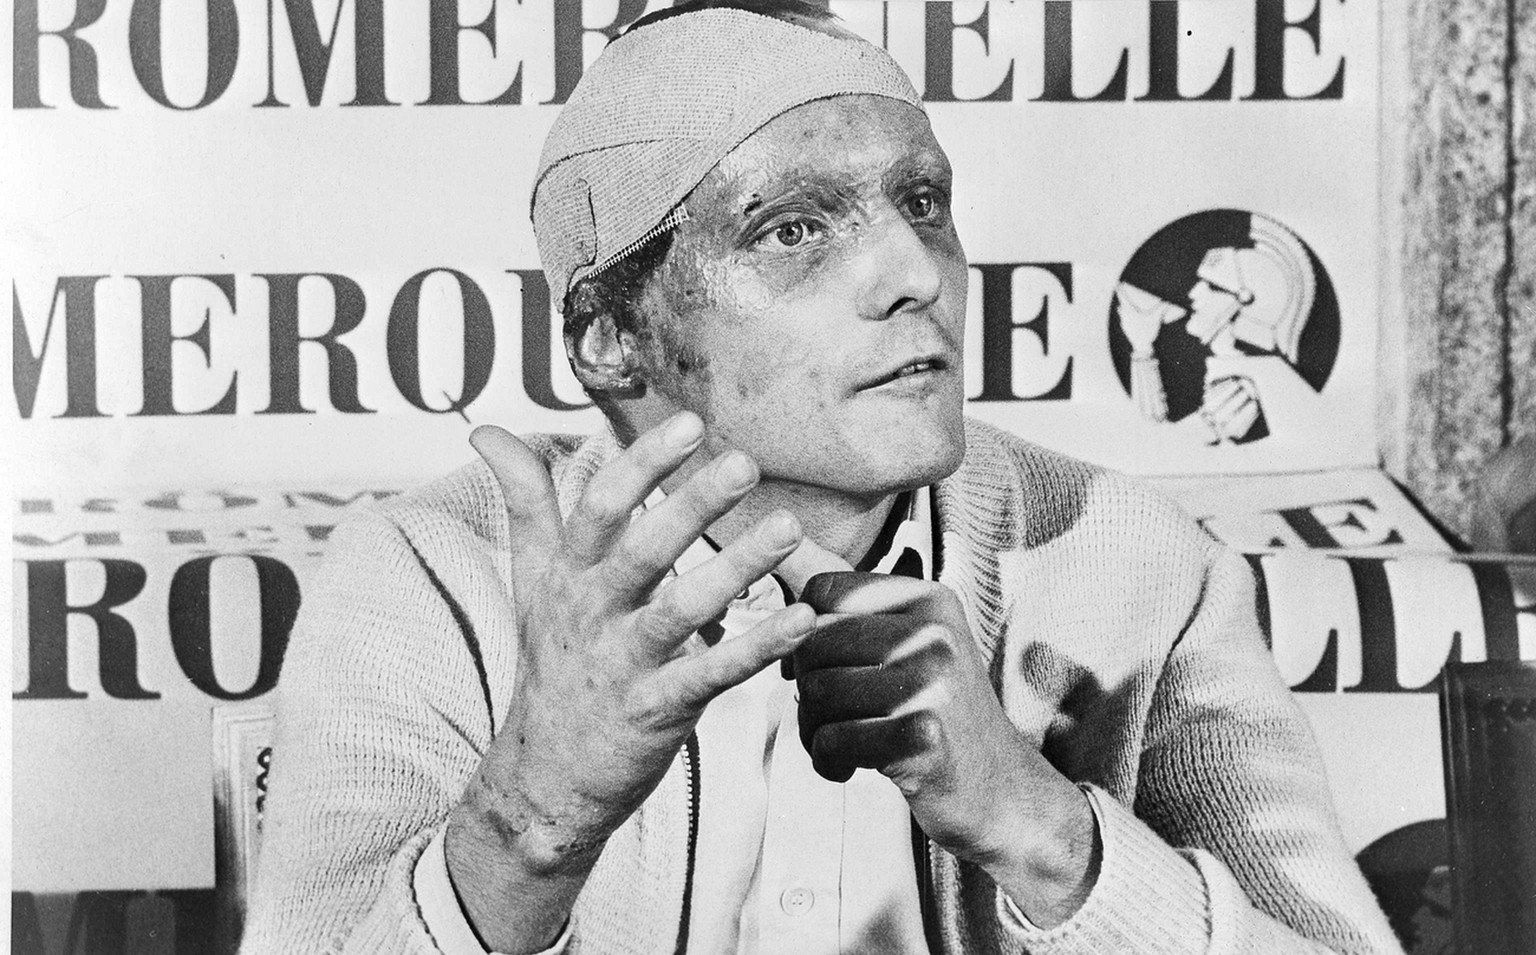 Austrian auto racer Niki Lauda, following his near fatal crash at the West German Grand Prix six weeks ago, announced he would start at the Italian Grand Prix at Monza, Sept. 12. (AP Photo) (KEYSTONE/AP/)